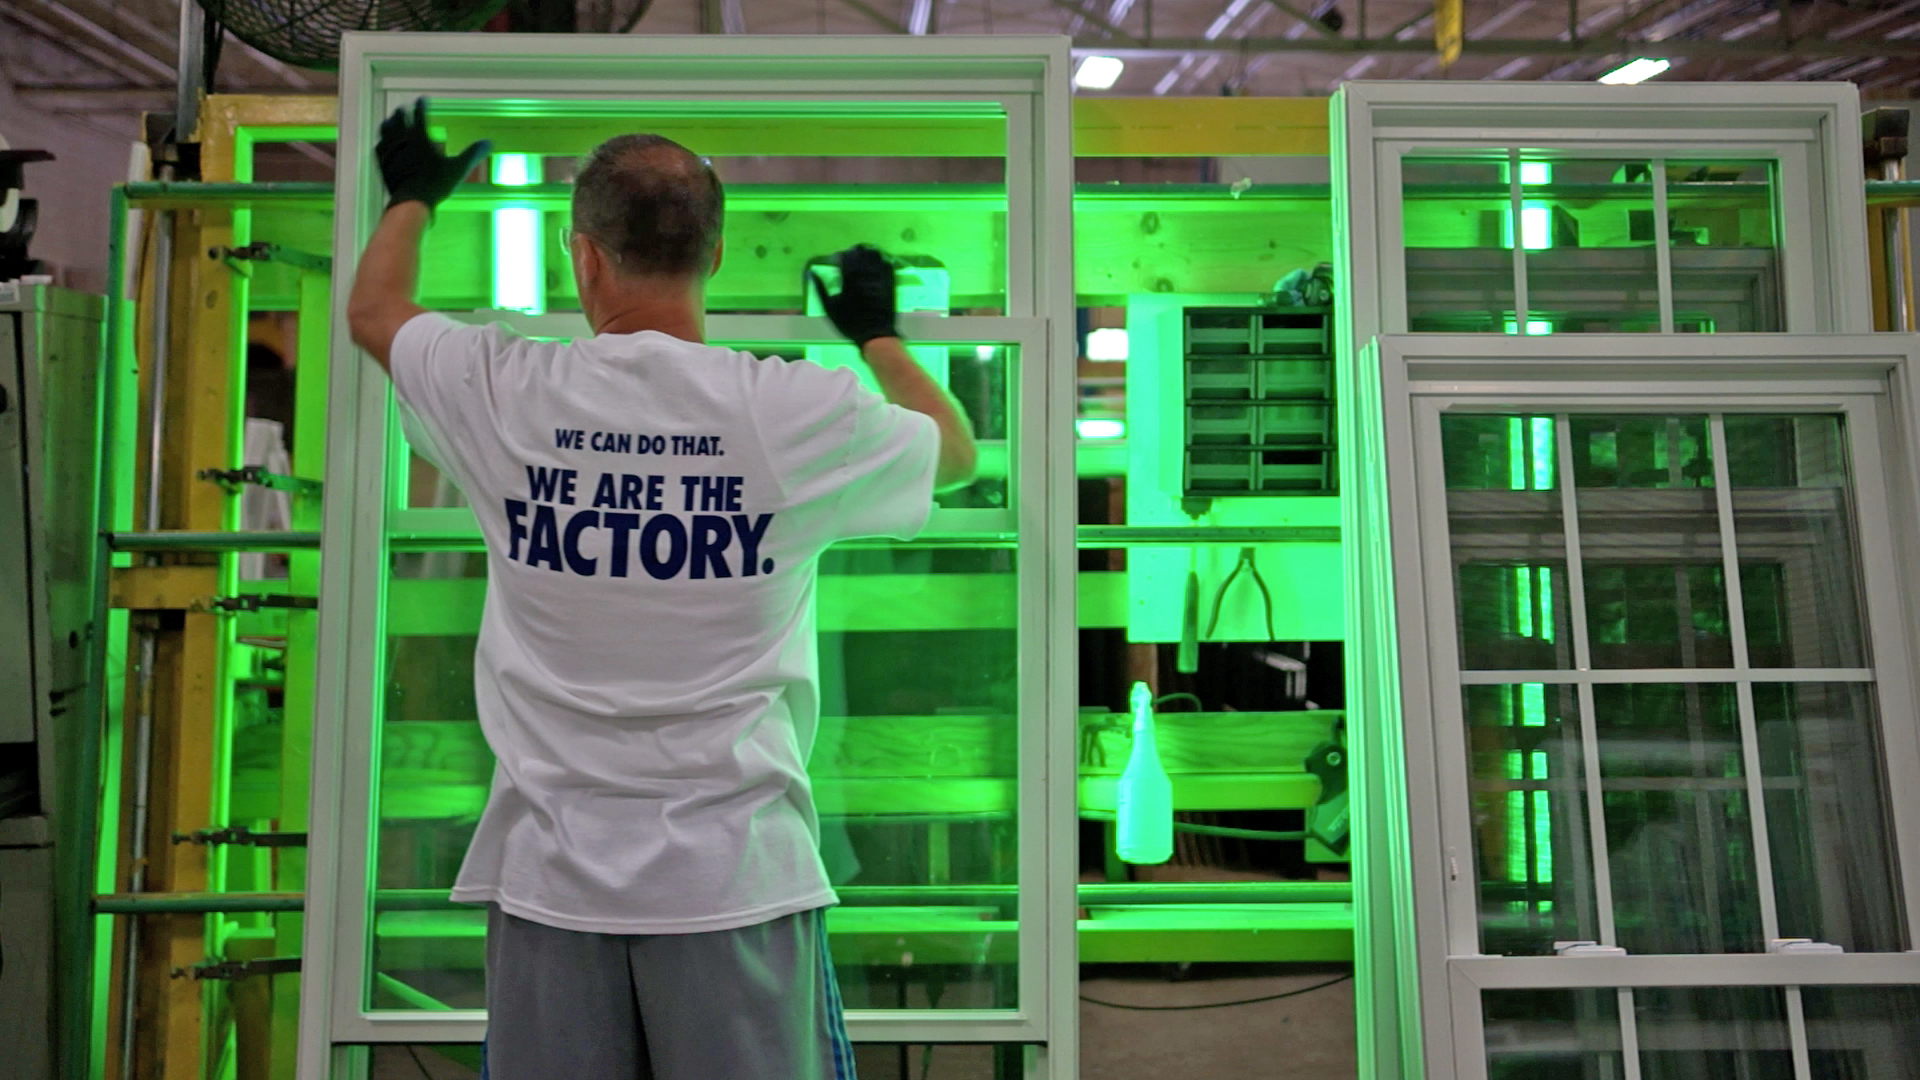 The green lights in our factory reveals flaws better than white light or even natural sunlight would.